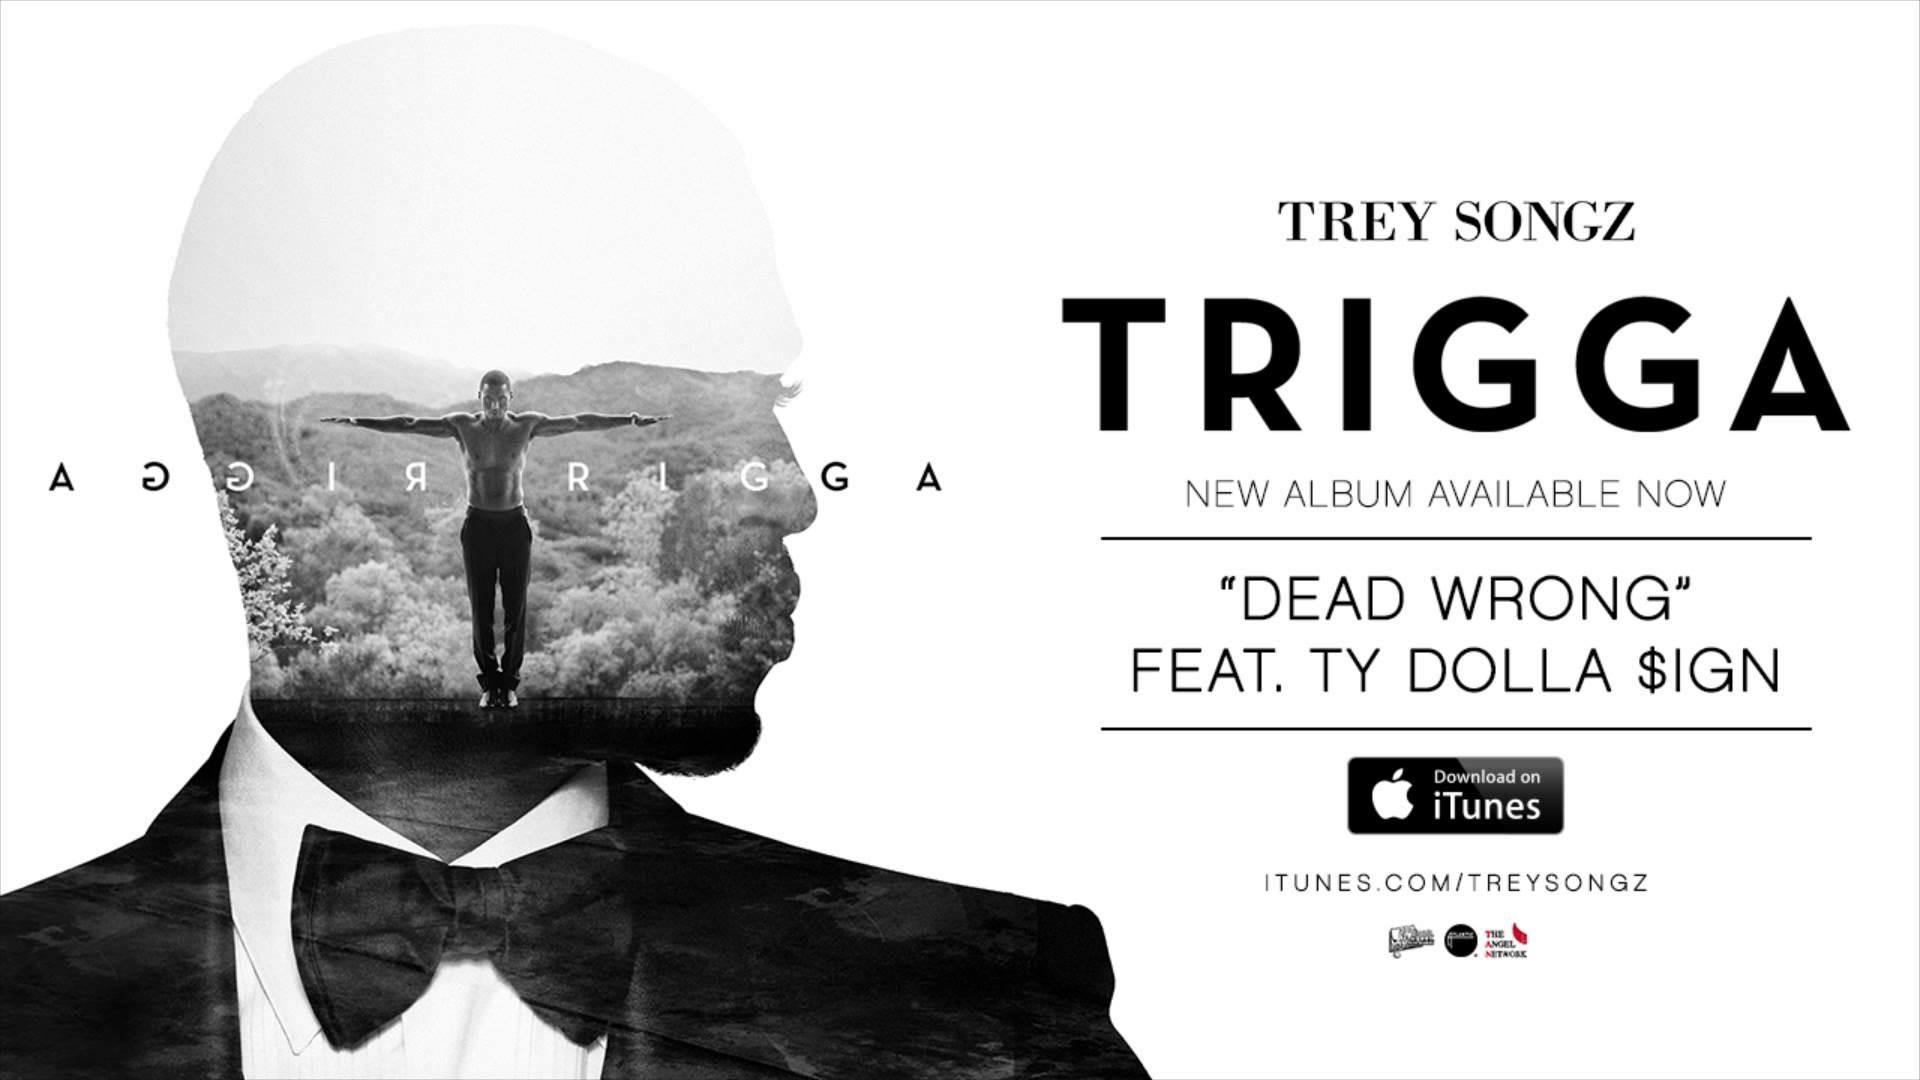 1920x1080 ... 86 best August and Trigga Trey images on Pinterest | Trey songz .